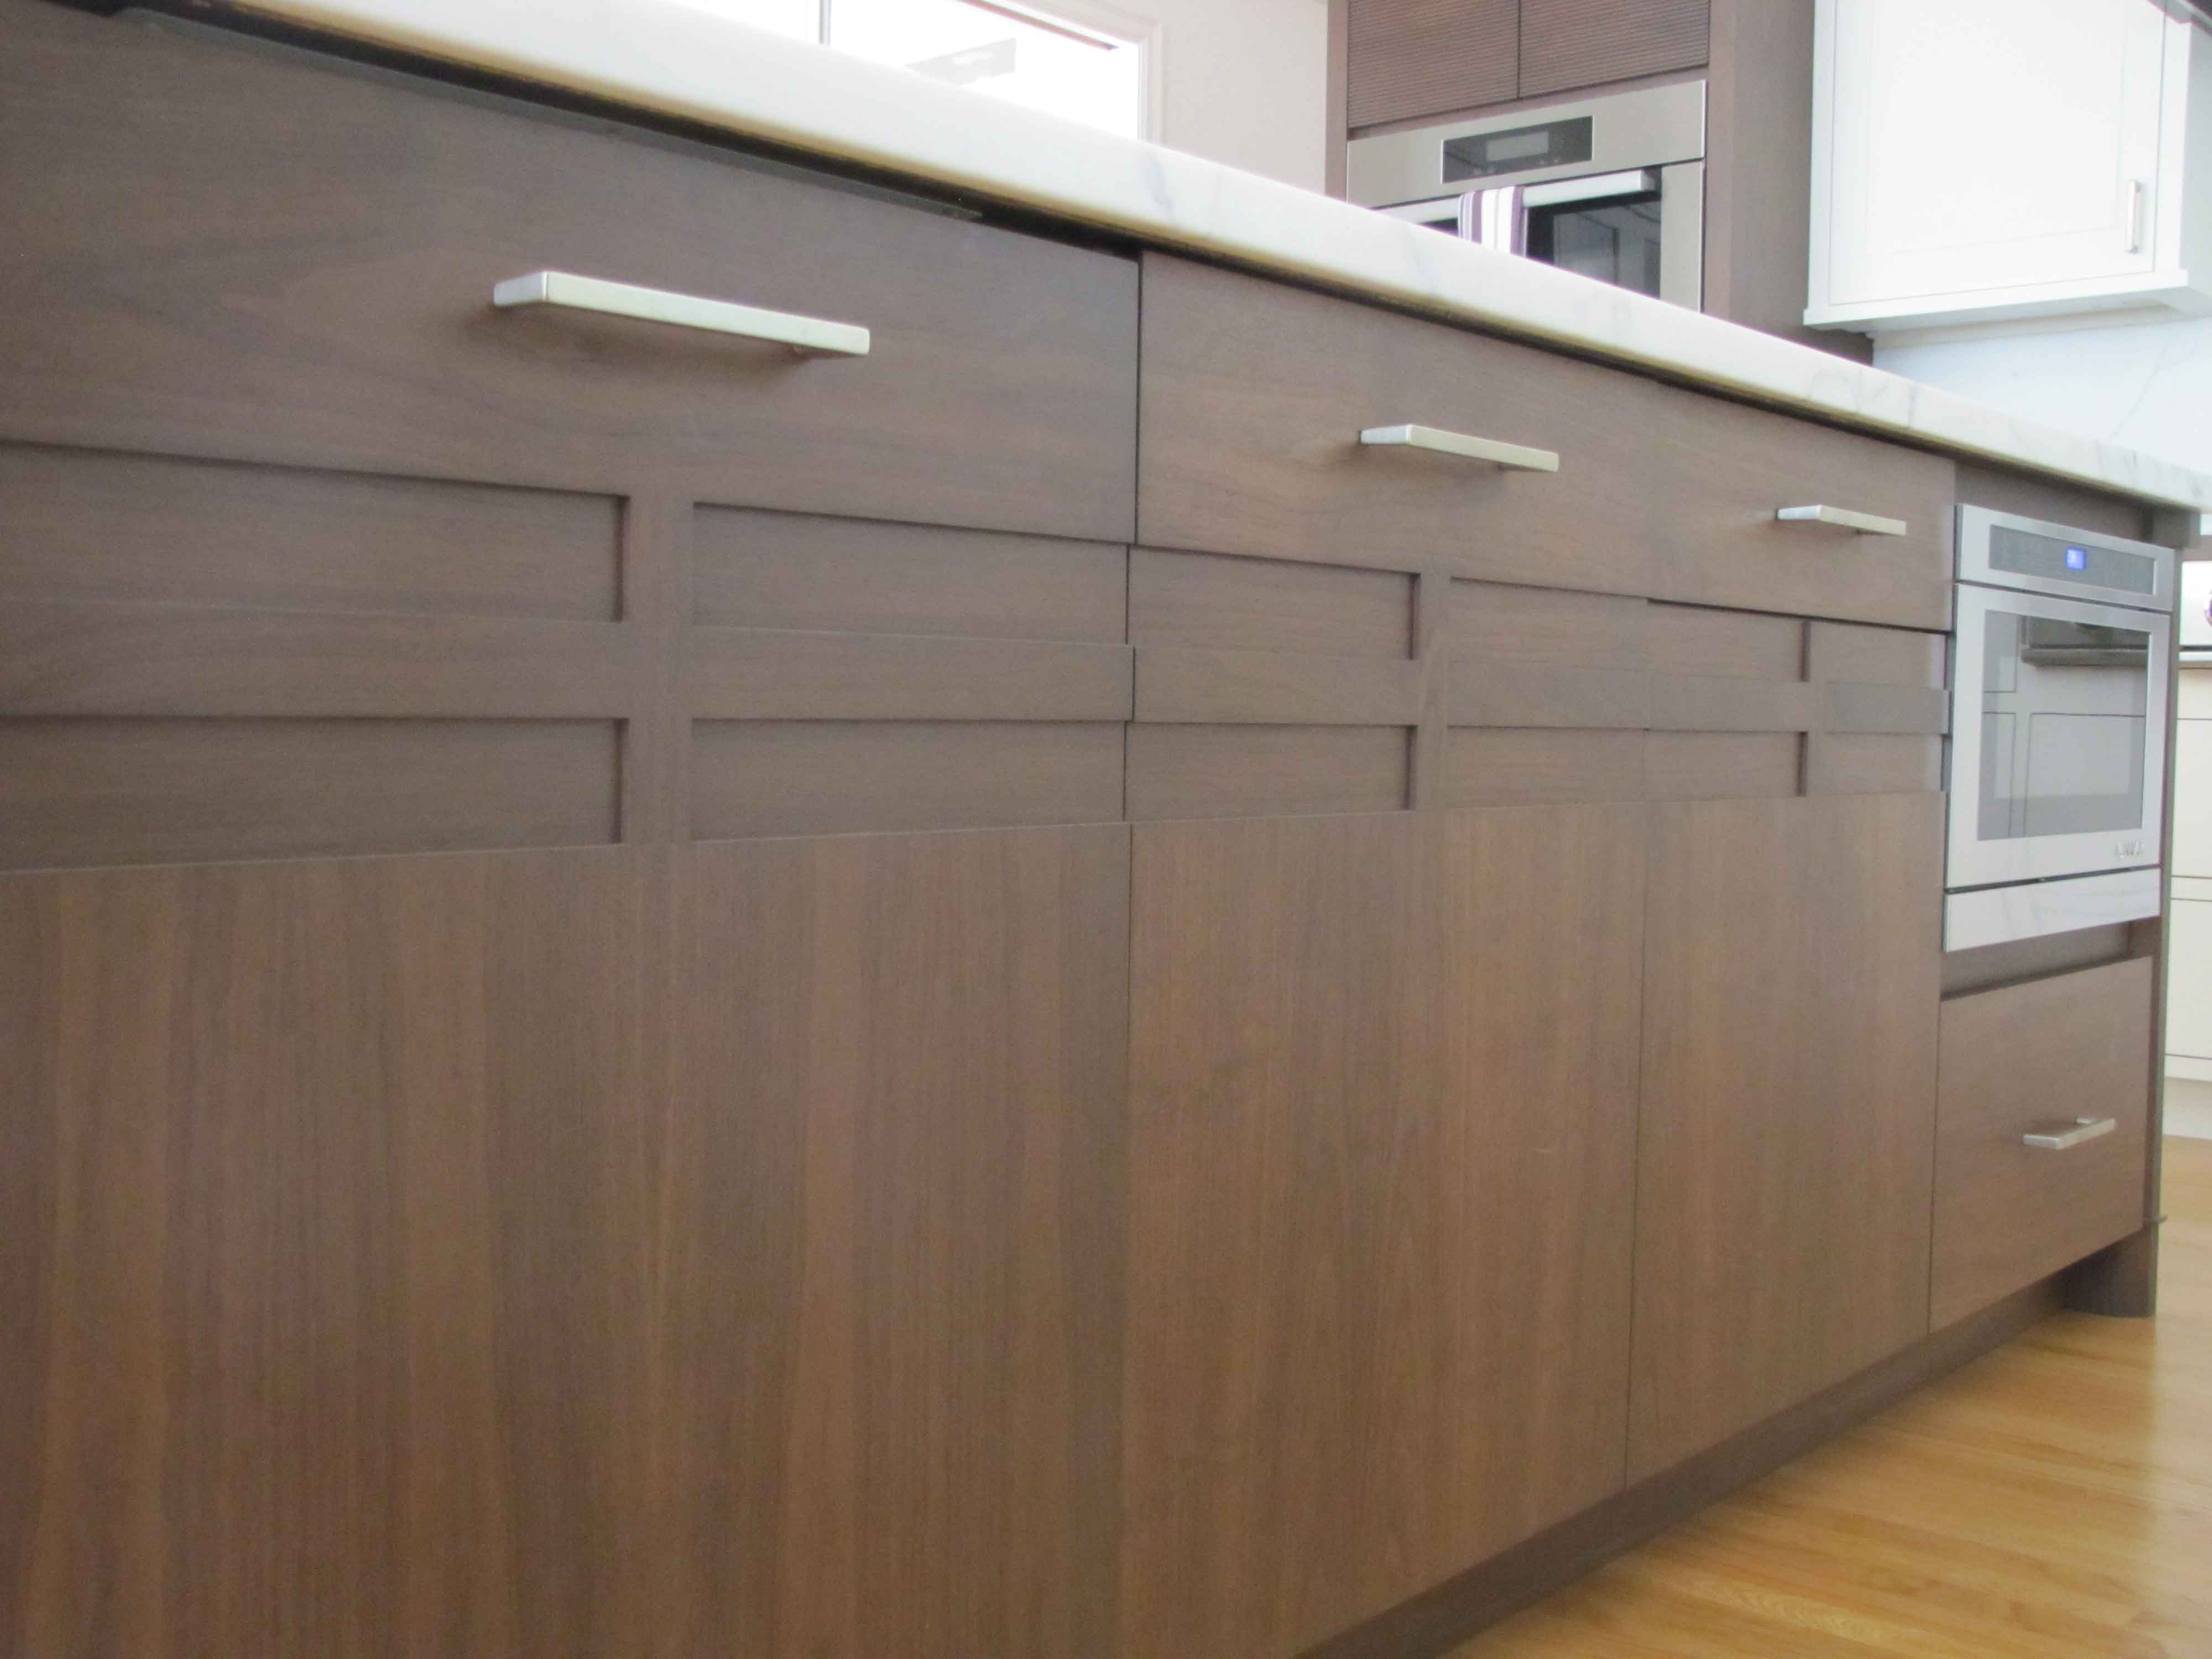 Terrific Walnut And White Painted Kitchen Cabinets And Media Center Home Interior And Landscaping Ologienasavecom